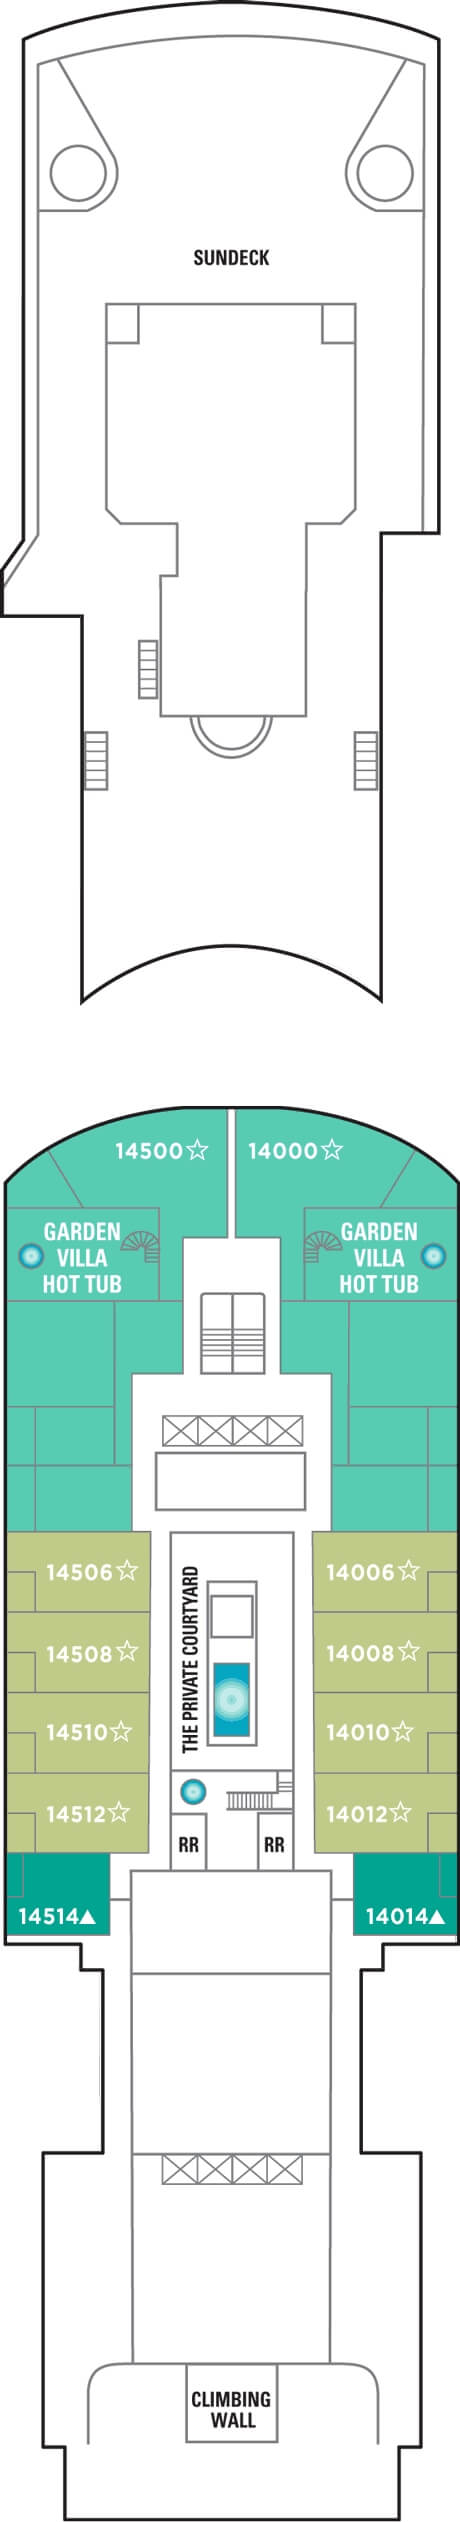 Norwegian Gem Deck 14 layout